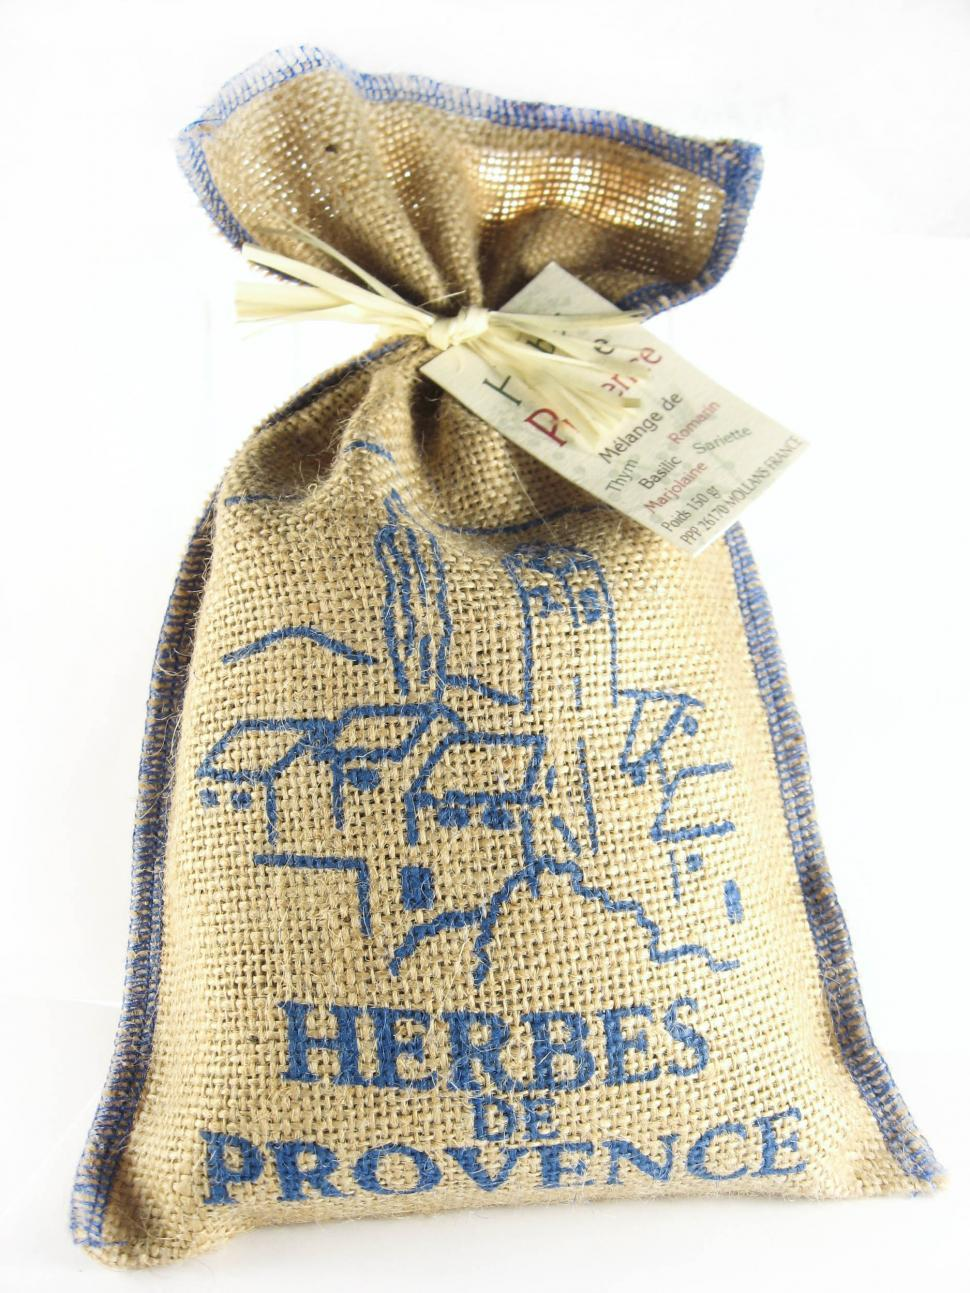 Download Free Stock HD Photo of Bag of Herbs from Provance Online